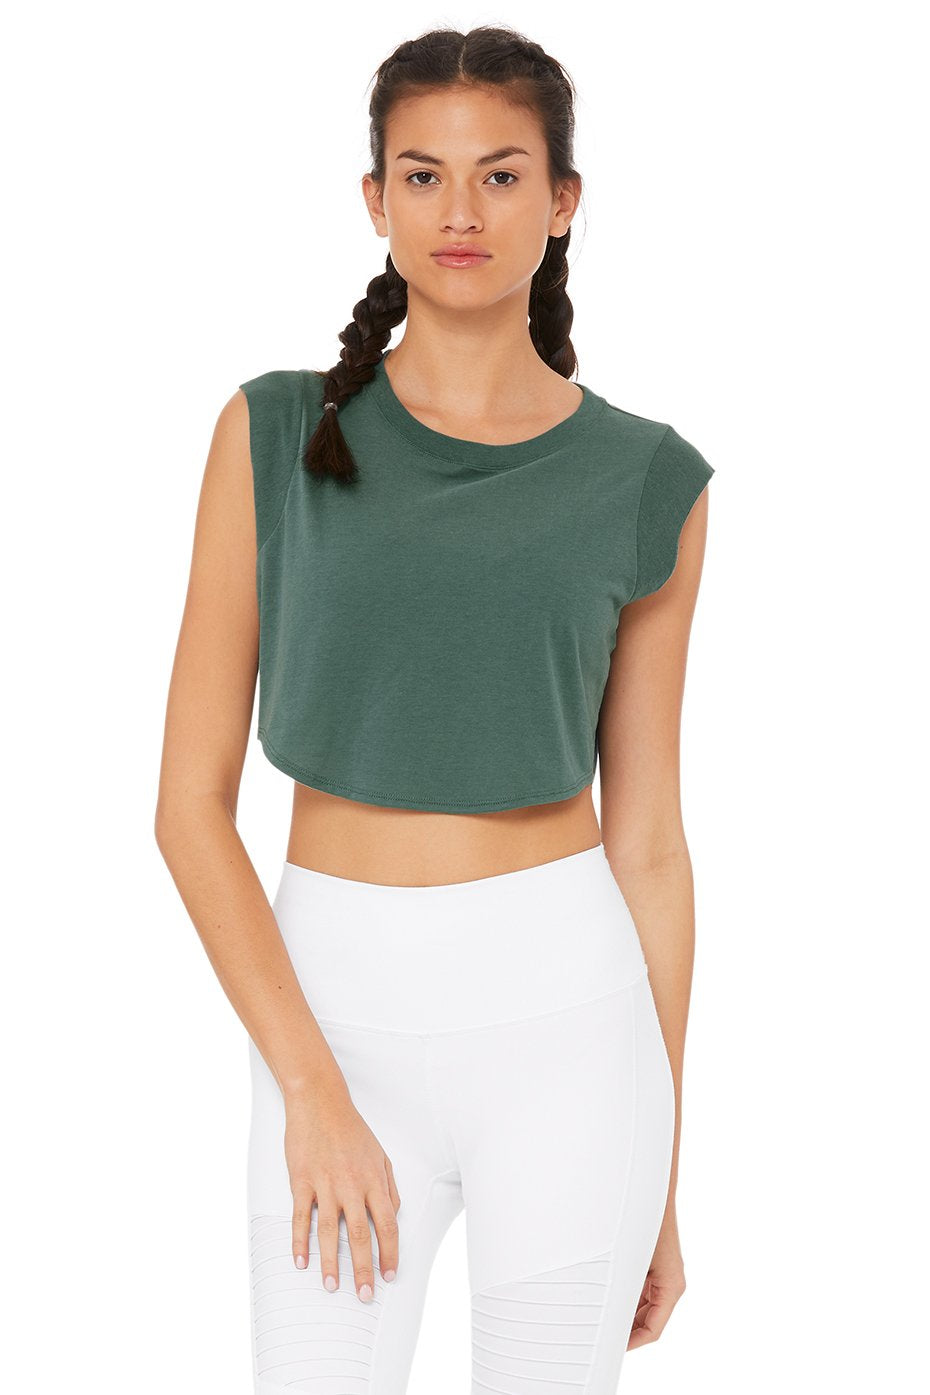 Alo Yoga SMALL Echo Tee - Seagrass